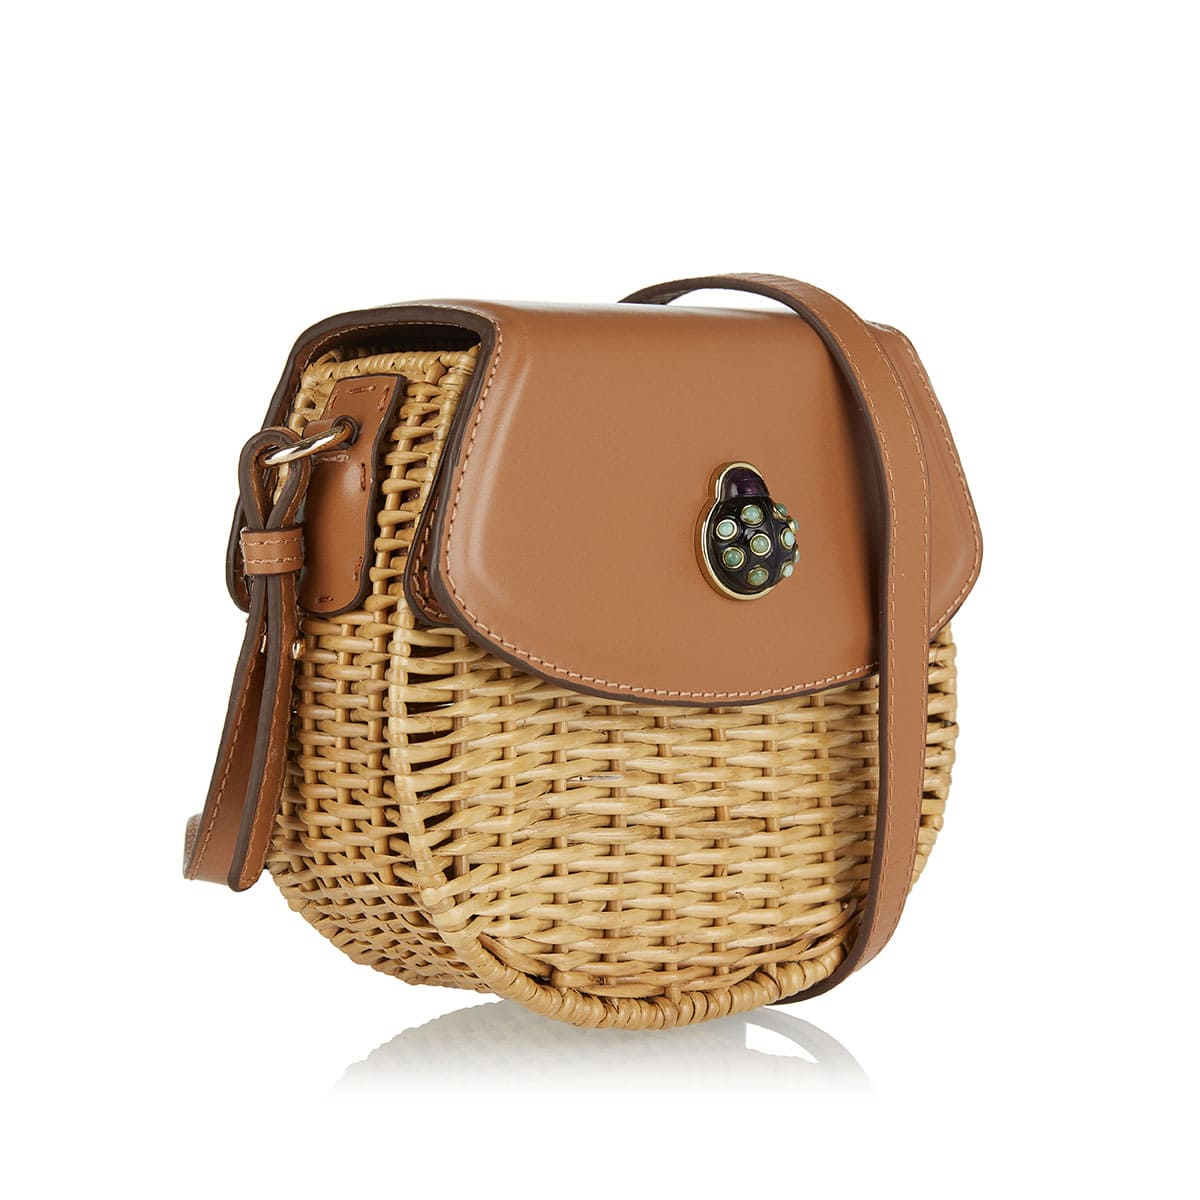 Garden rattan and leather bag